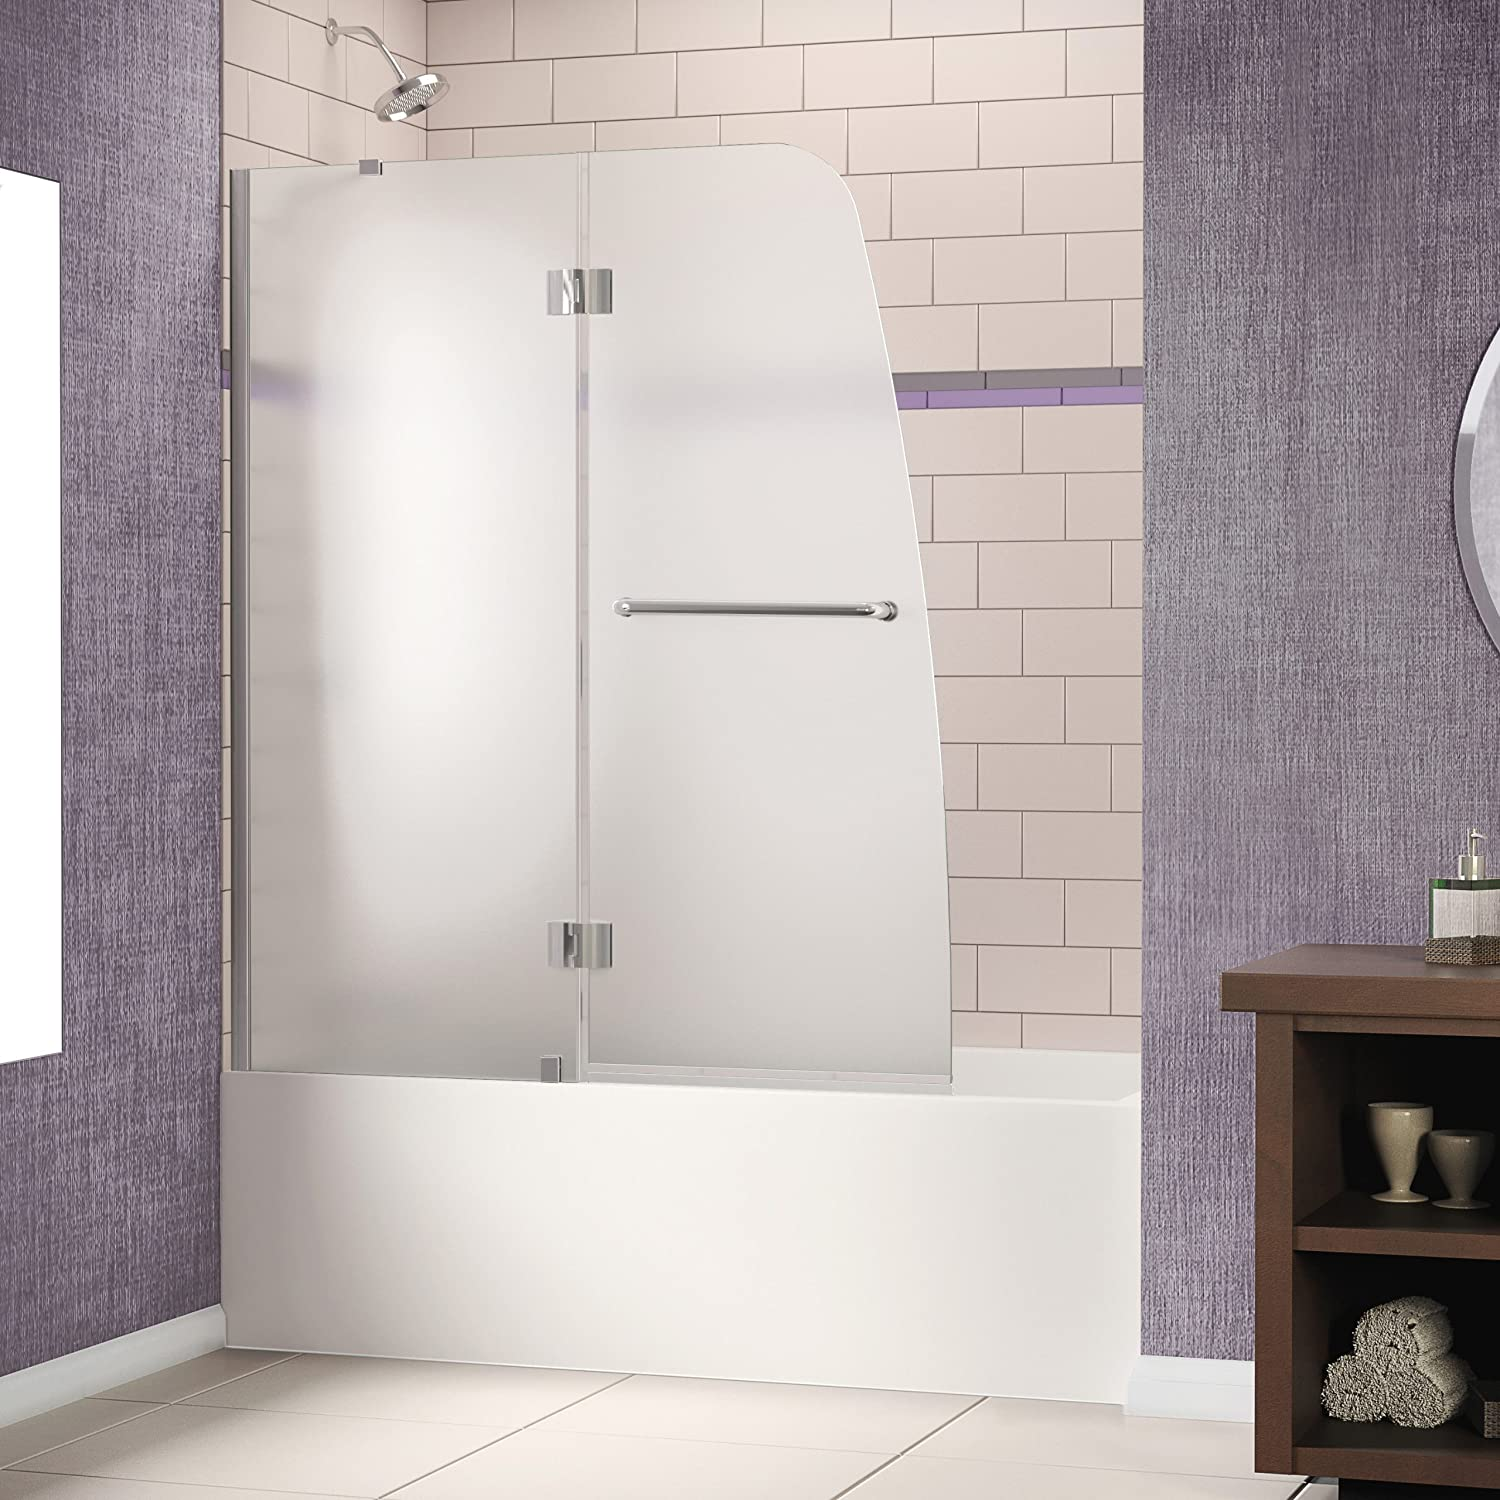 DreamLine Aqua 48 In. Frameless Hinged Tub Door, Frosted 1/4 In. Glass  Door, Chrome Finish, SHDR 3148586 01 FR1   Shower Doors   Amazon.com